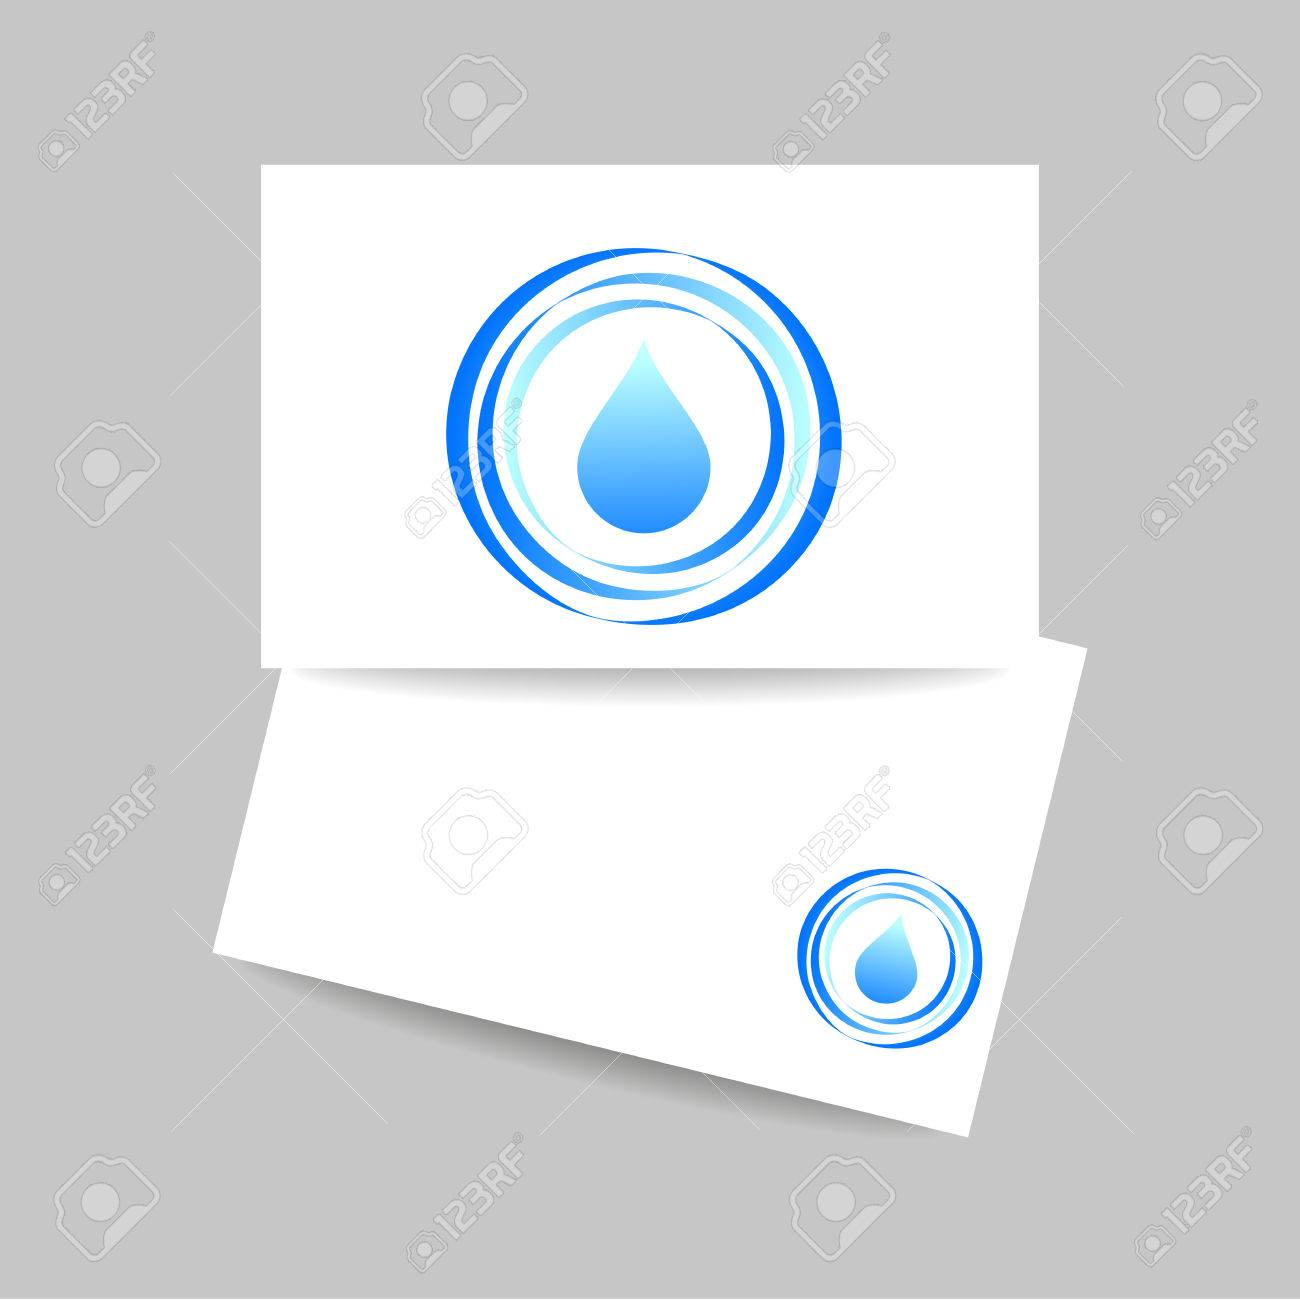 Business cards rochester ny image collections free business cards liquid business cards gallery free business cards aqua water drop concept business card design for mineral magicingreecefo Image collections